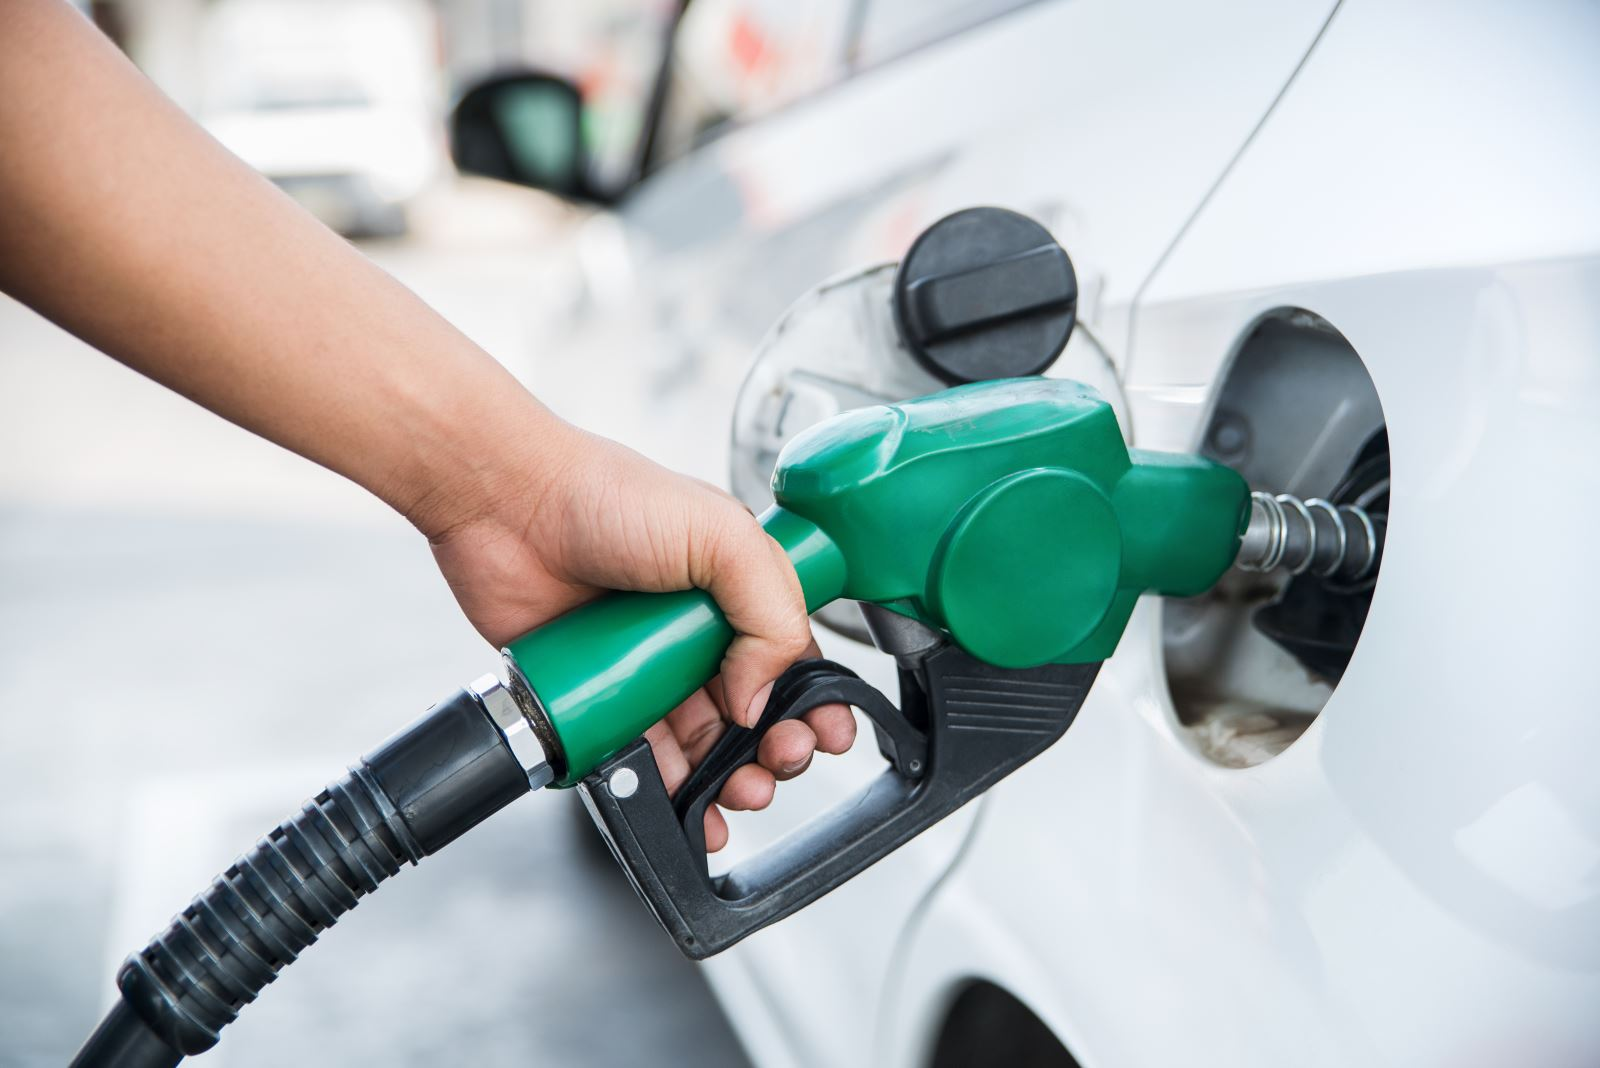 Best Deals on Fuel Cards